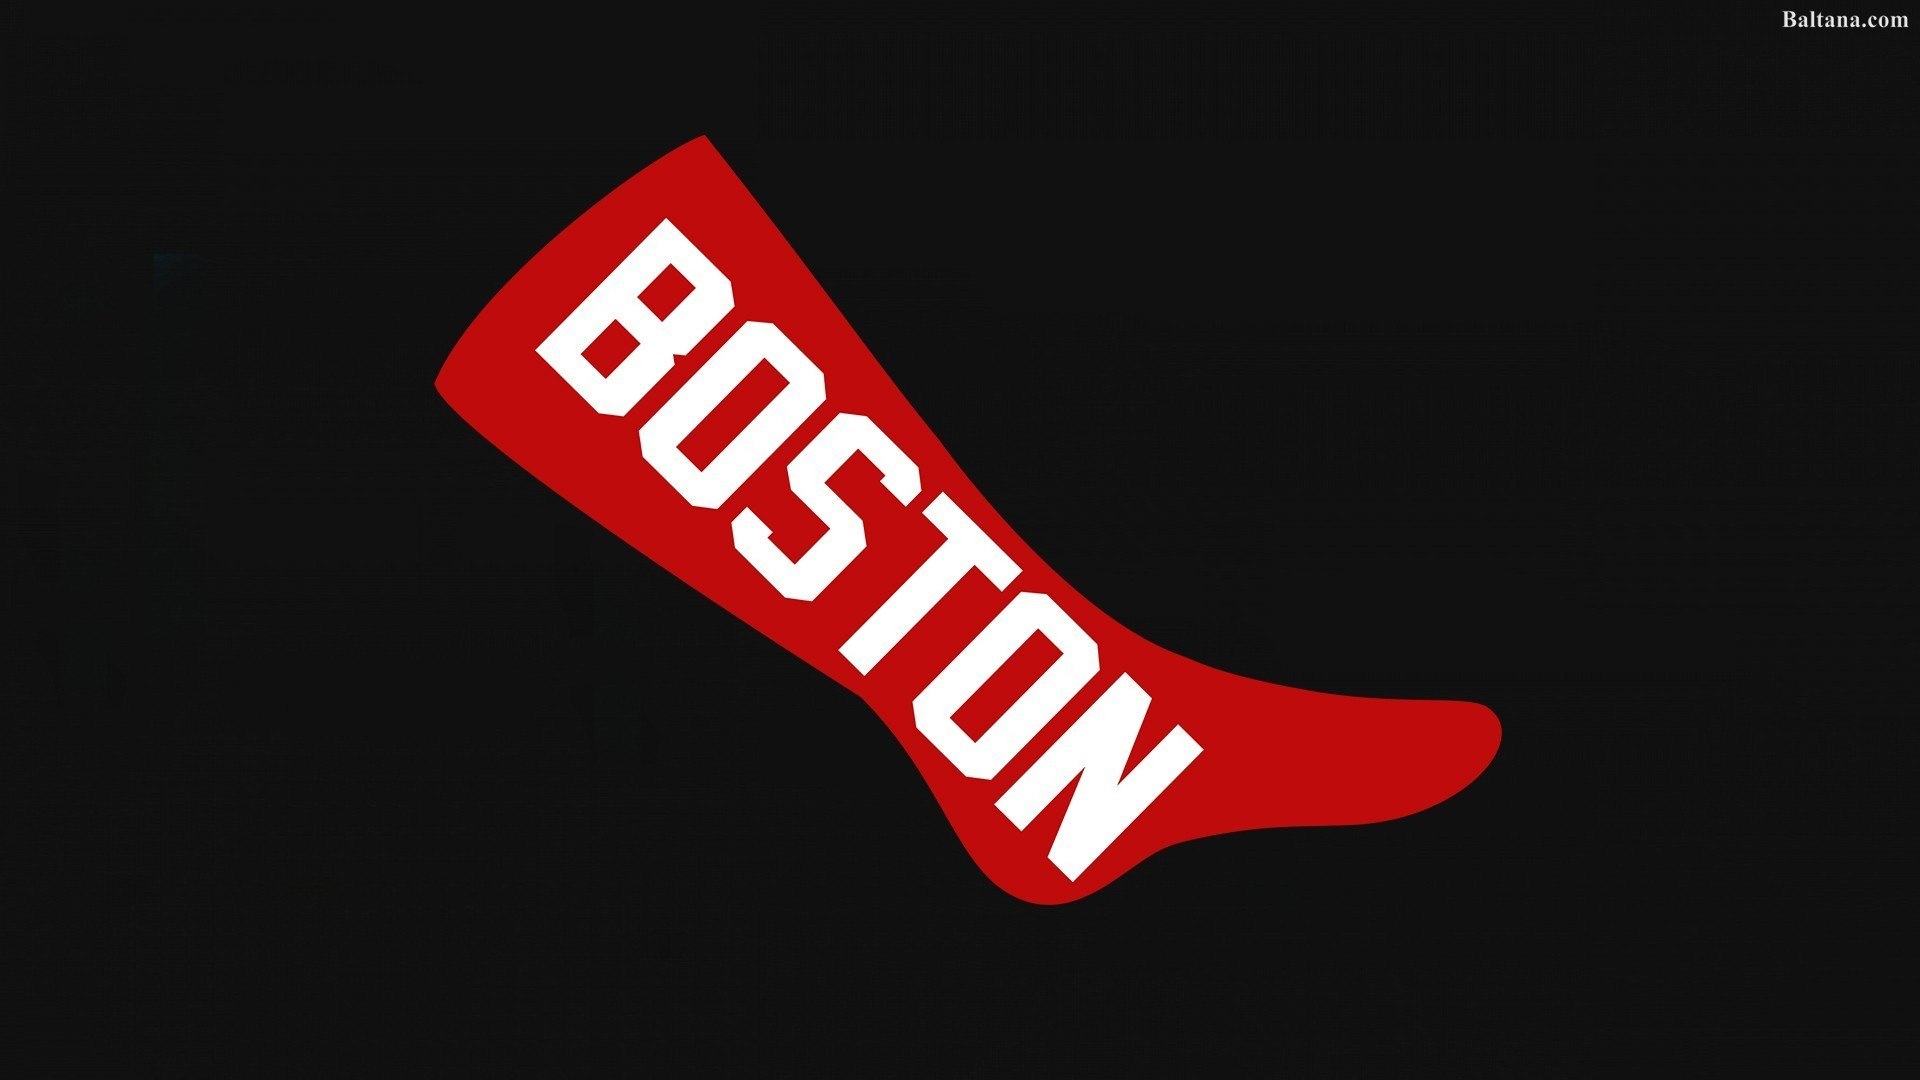 1920x1080 Boston Red Sox HD Wallpapers 33007